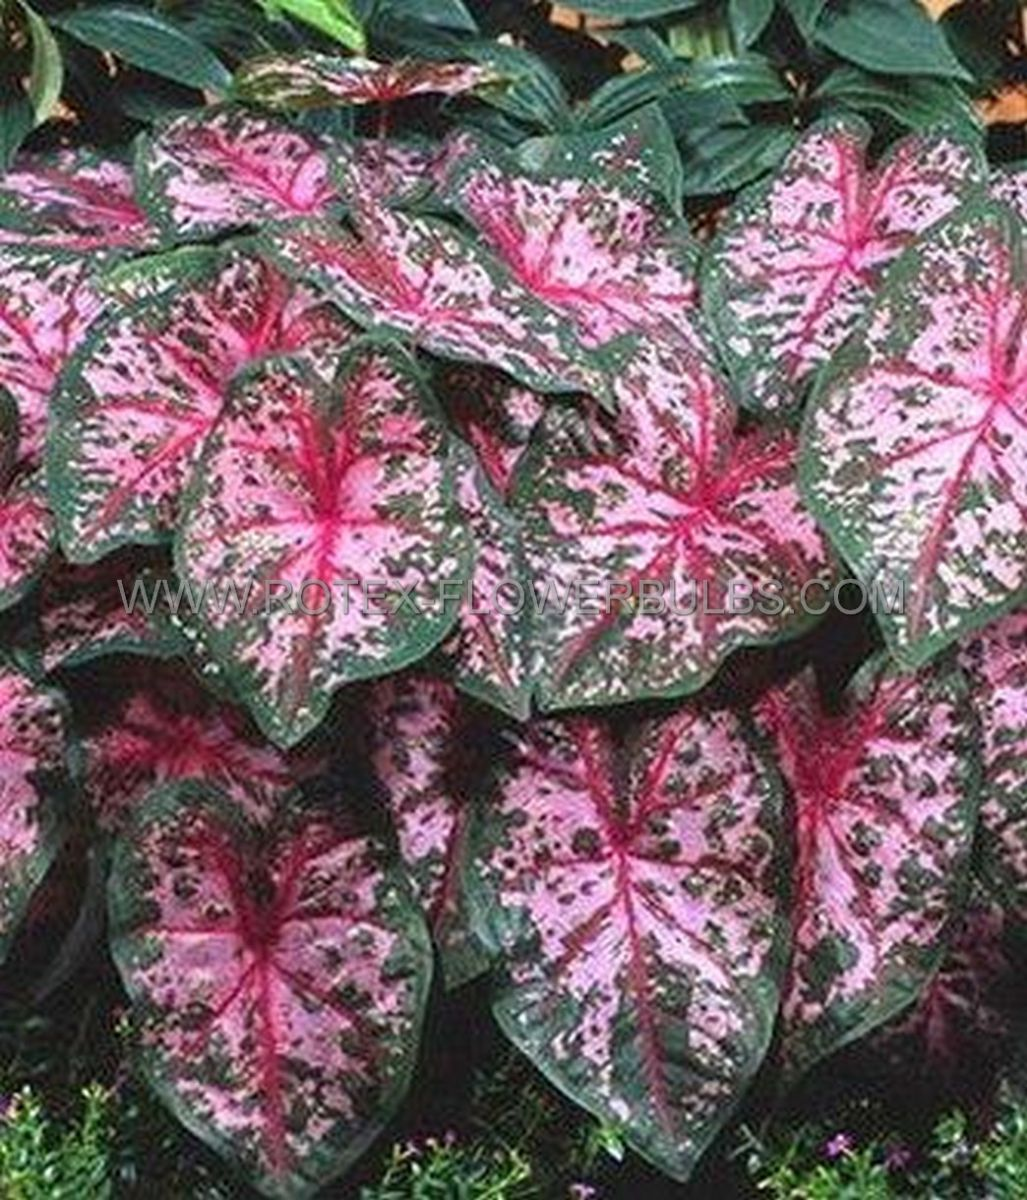 caladium fancy leaved carolyn whorton no2 400 pcarton